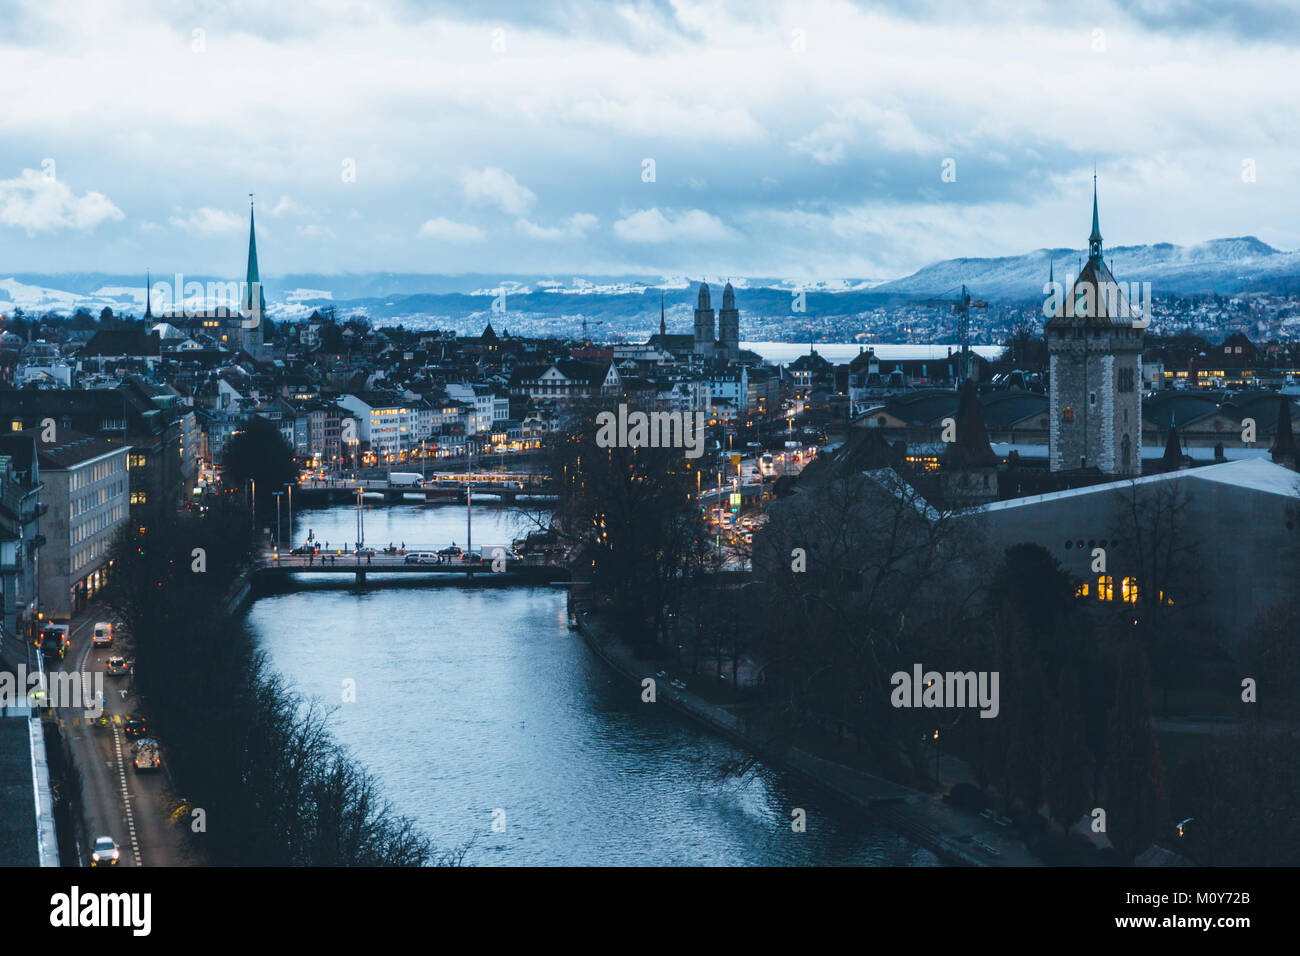 Aerial view of Zurich city center at dawn, with the Limmat river in the foreground and the old town in the background. - Stock Image